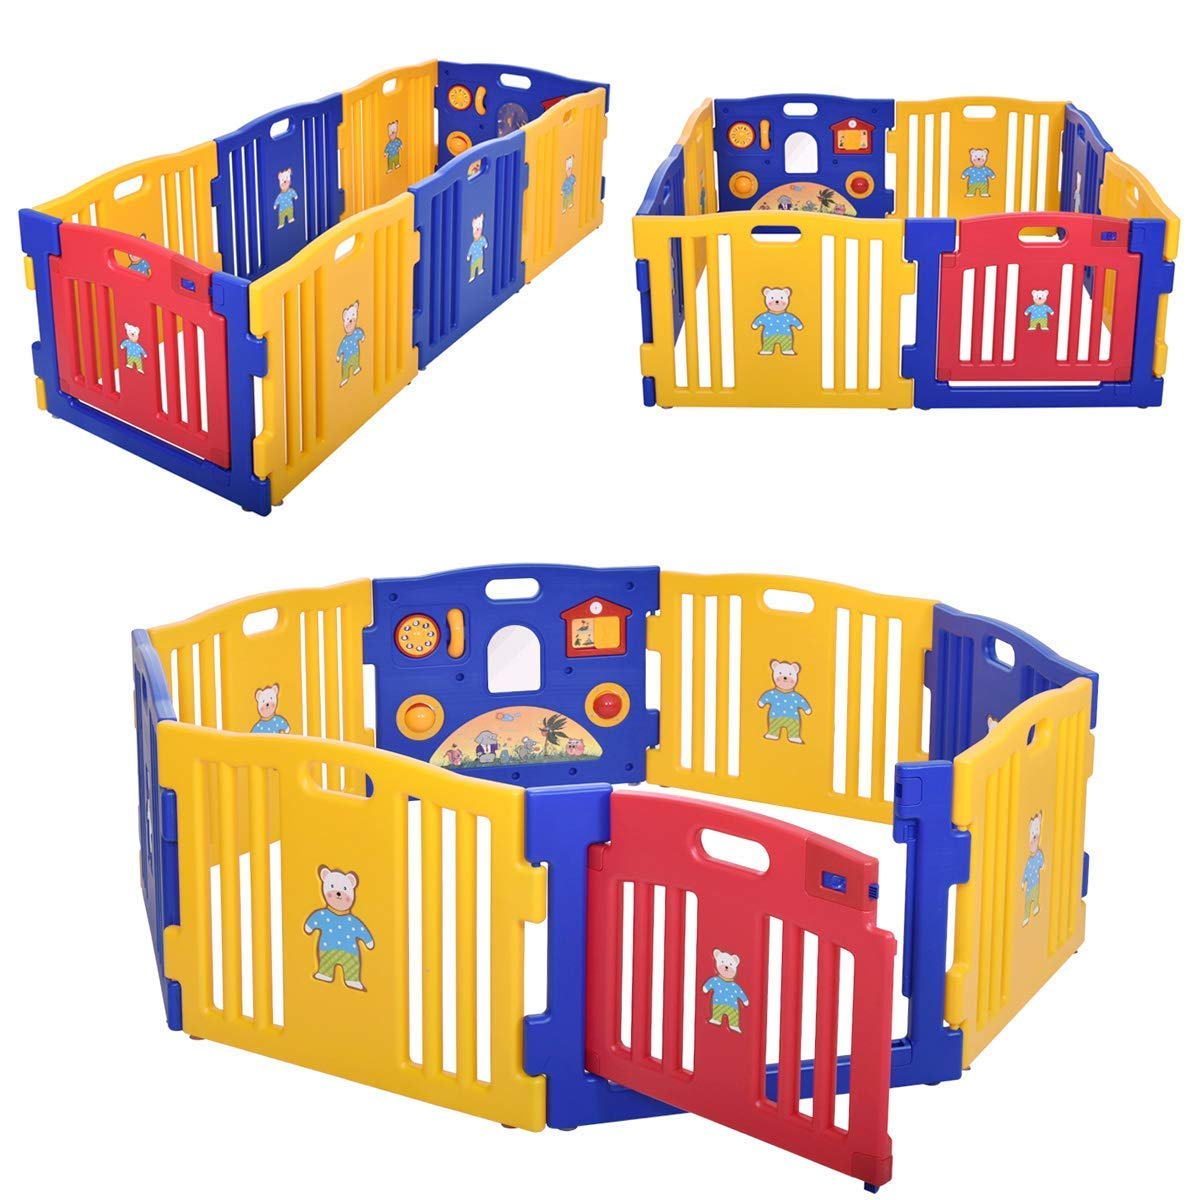 JAXPETY Baby Playpen Kids 8 Panel Safety Play Center Yard Home Indoor Outdoor New Pen Blue and Yellow